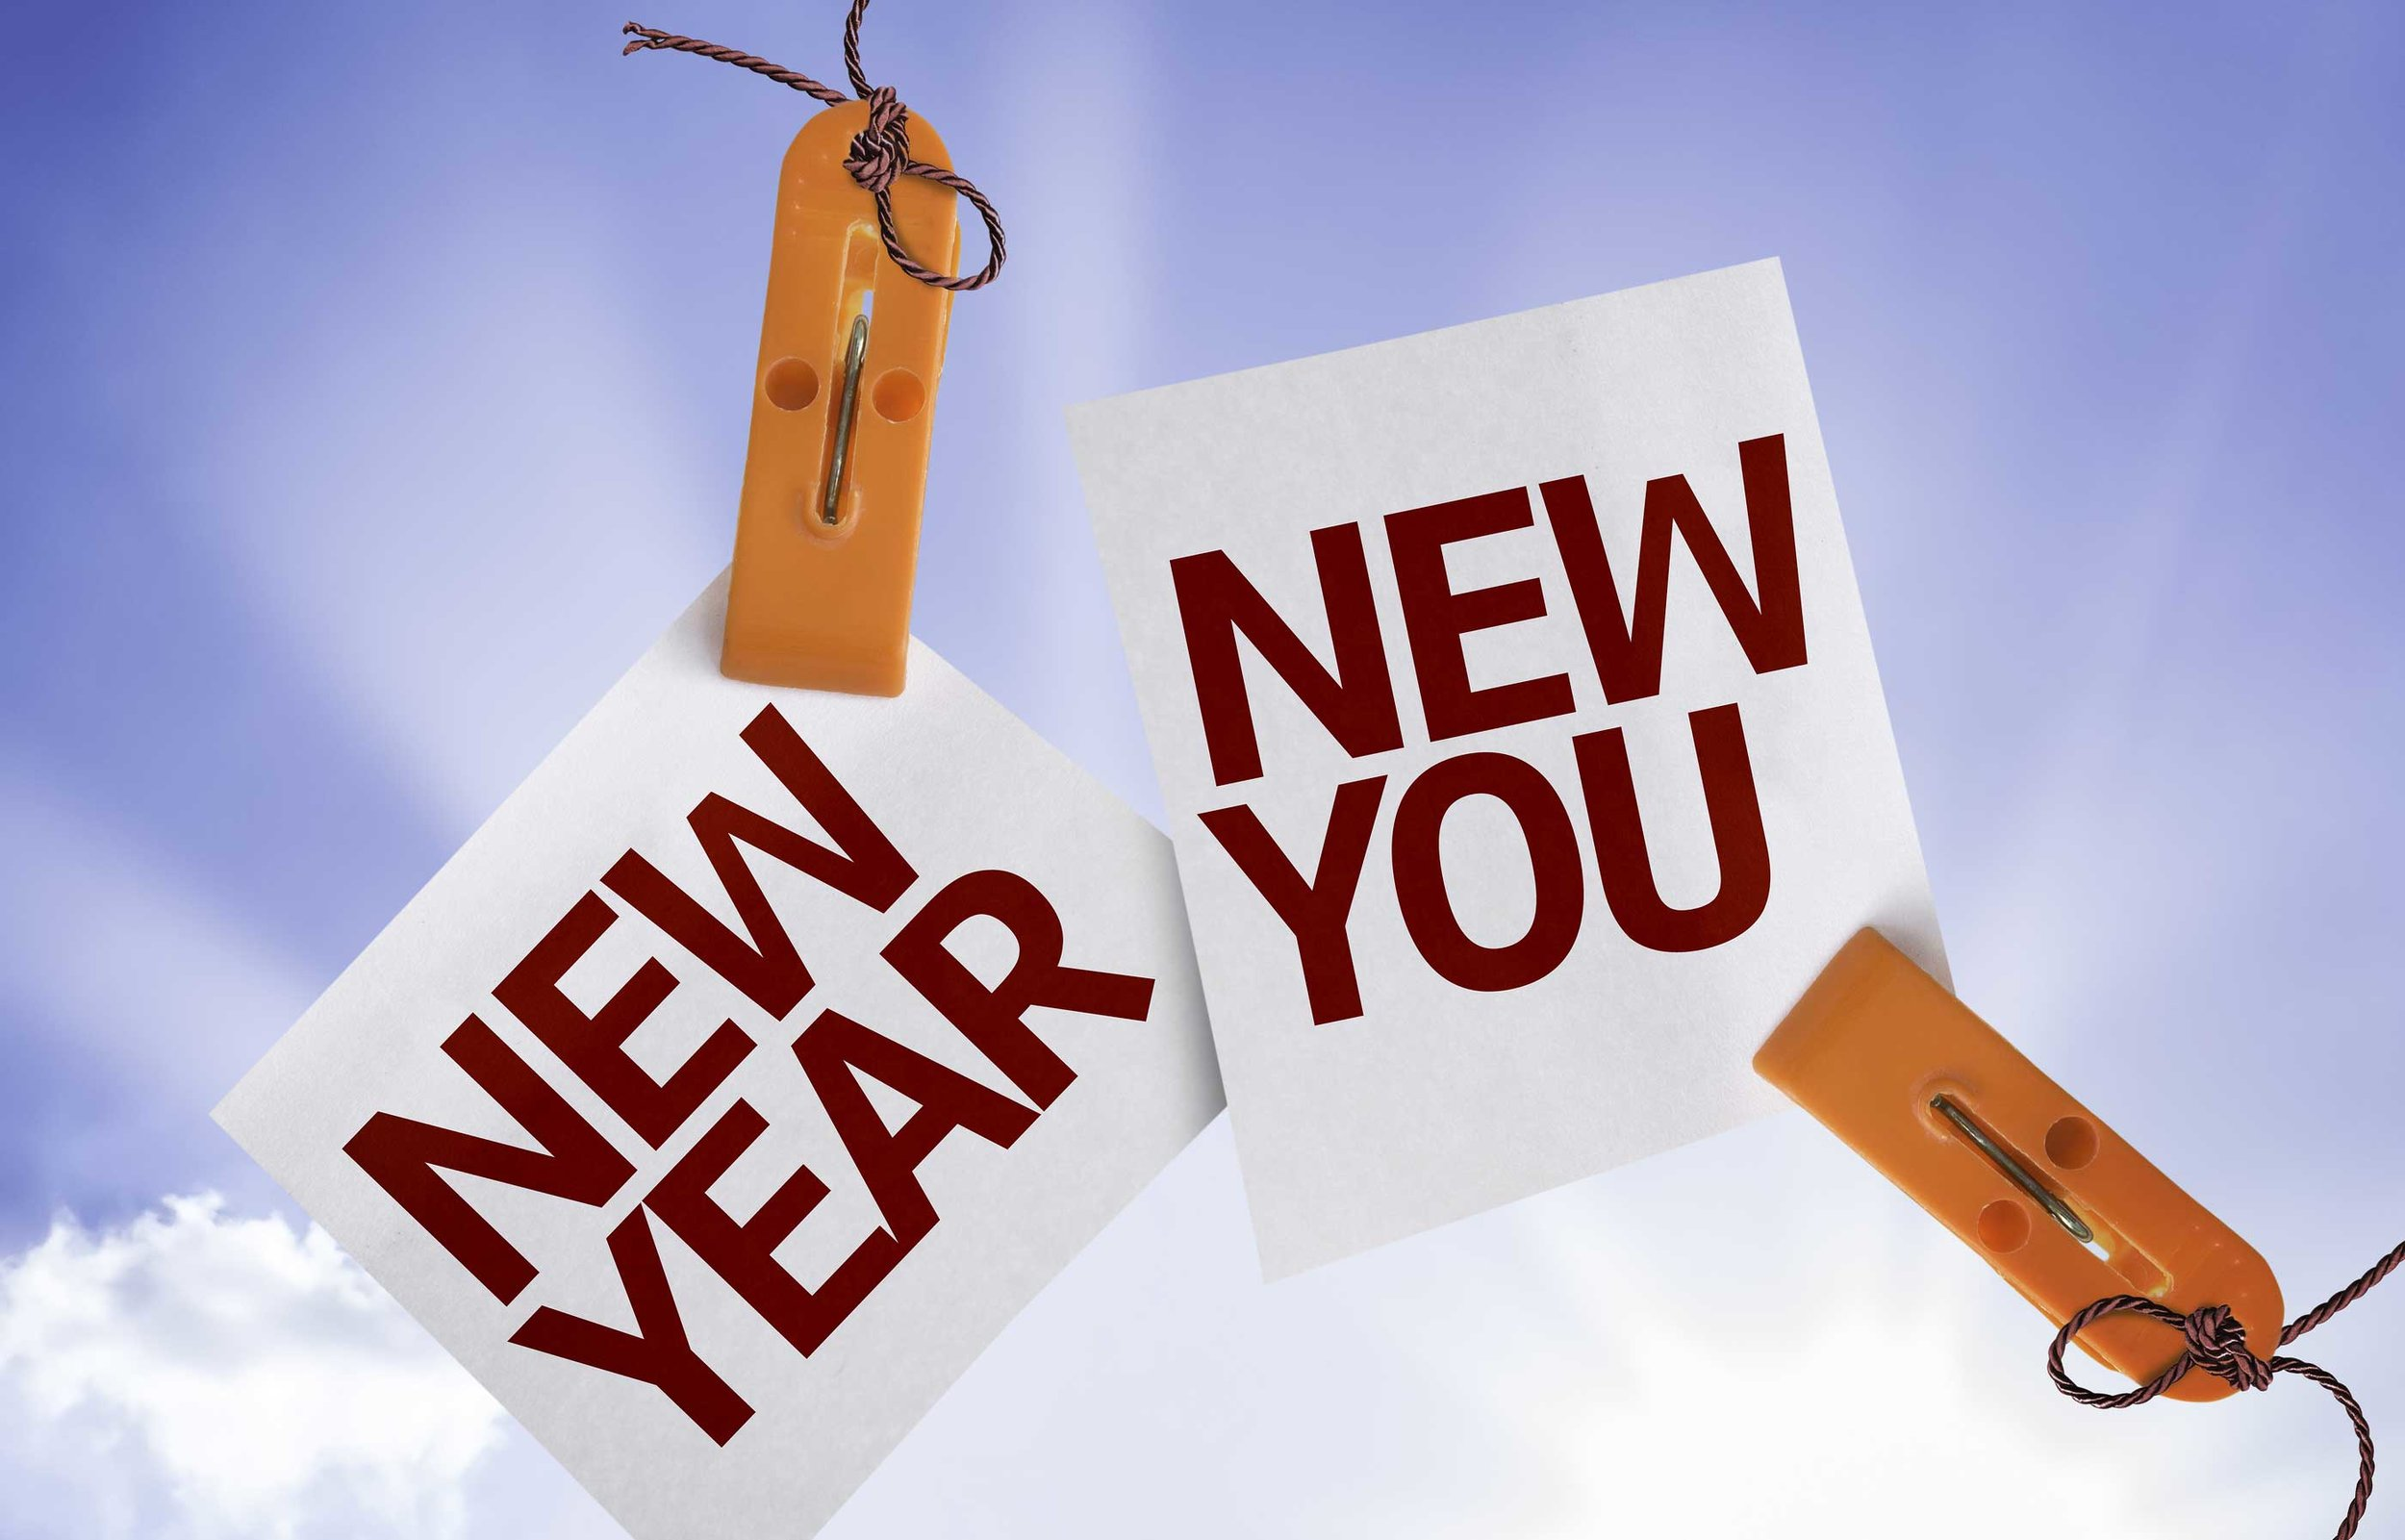 New-Year-New-You-on-Paper-Note-75618190.jpg